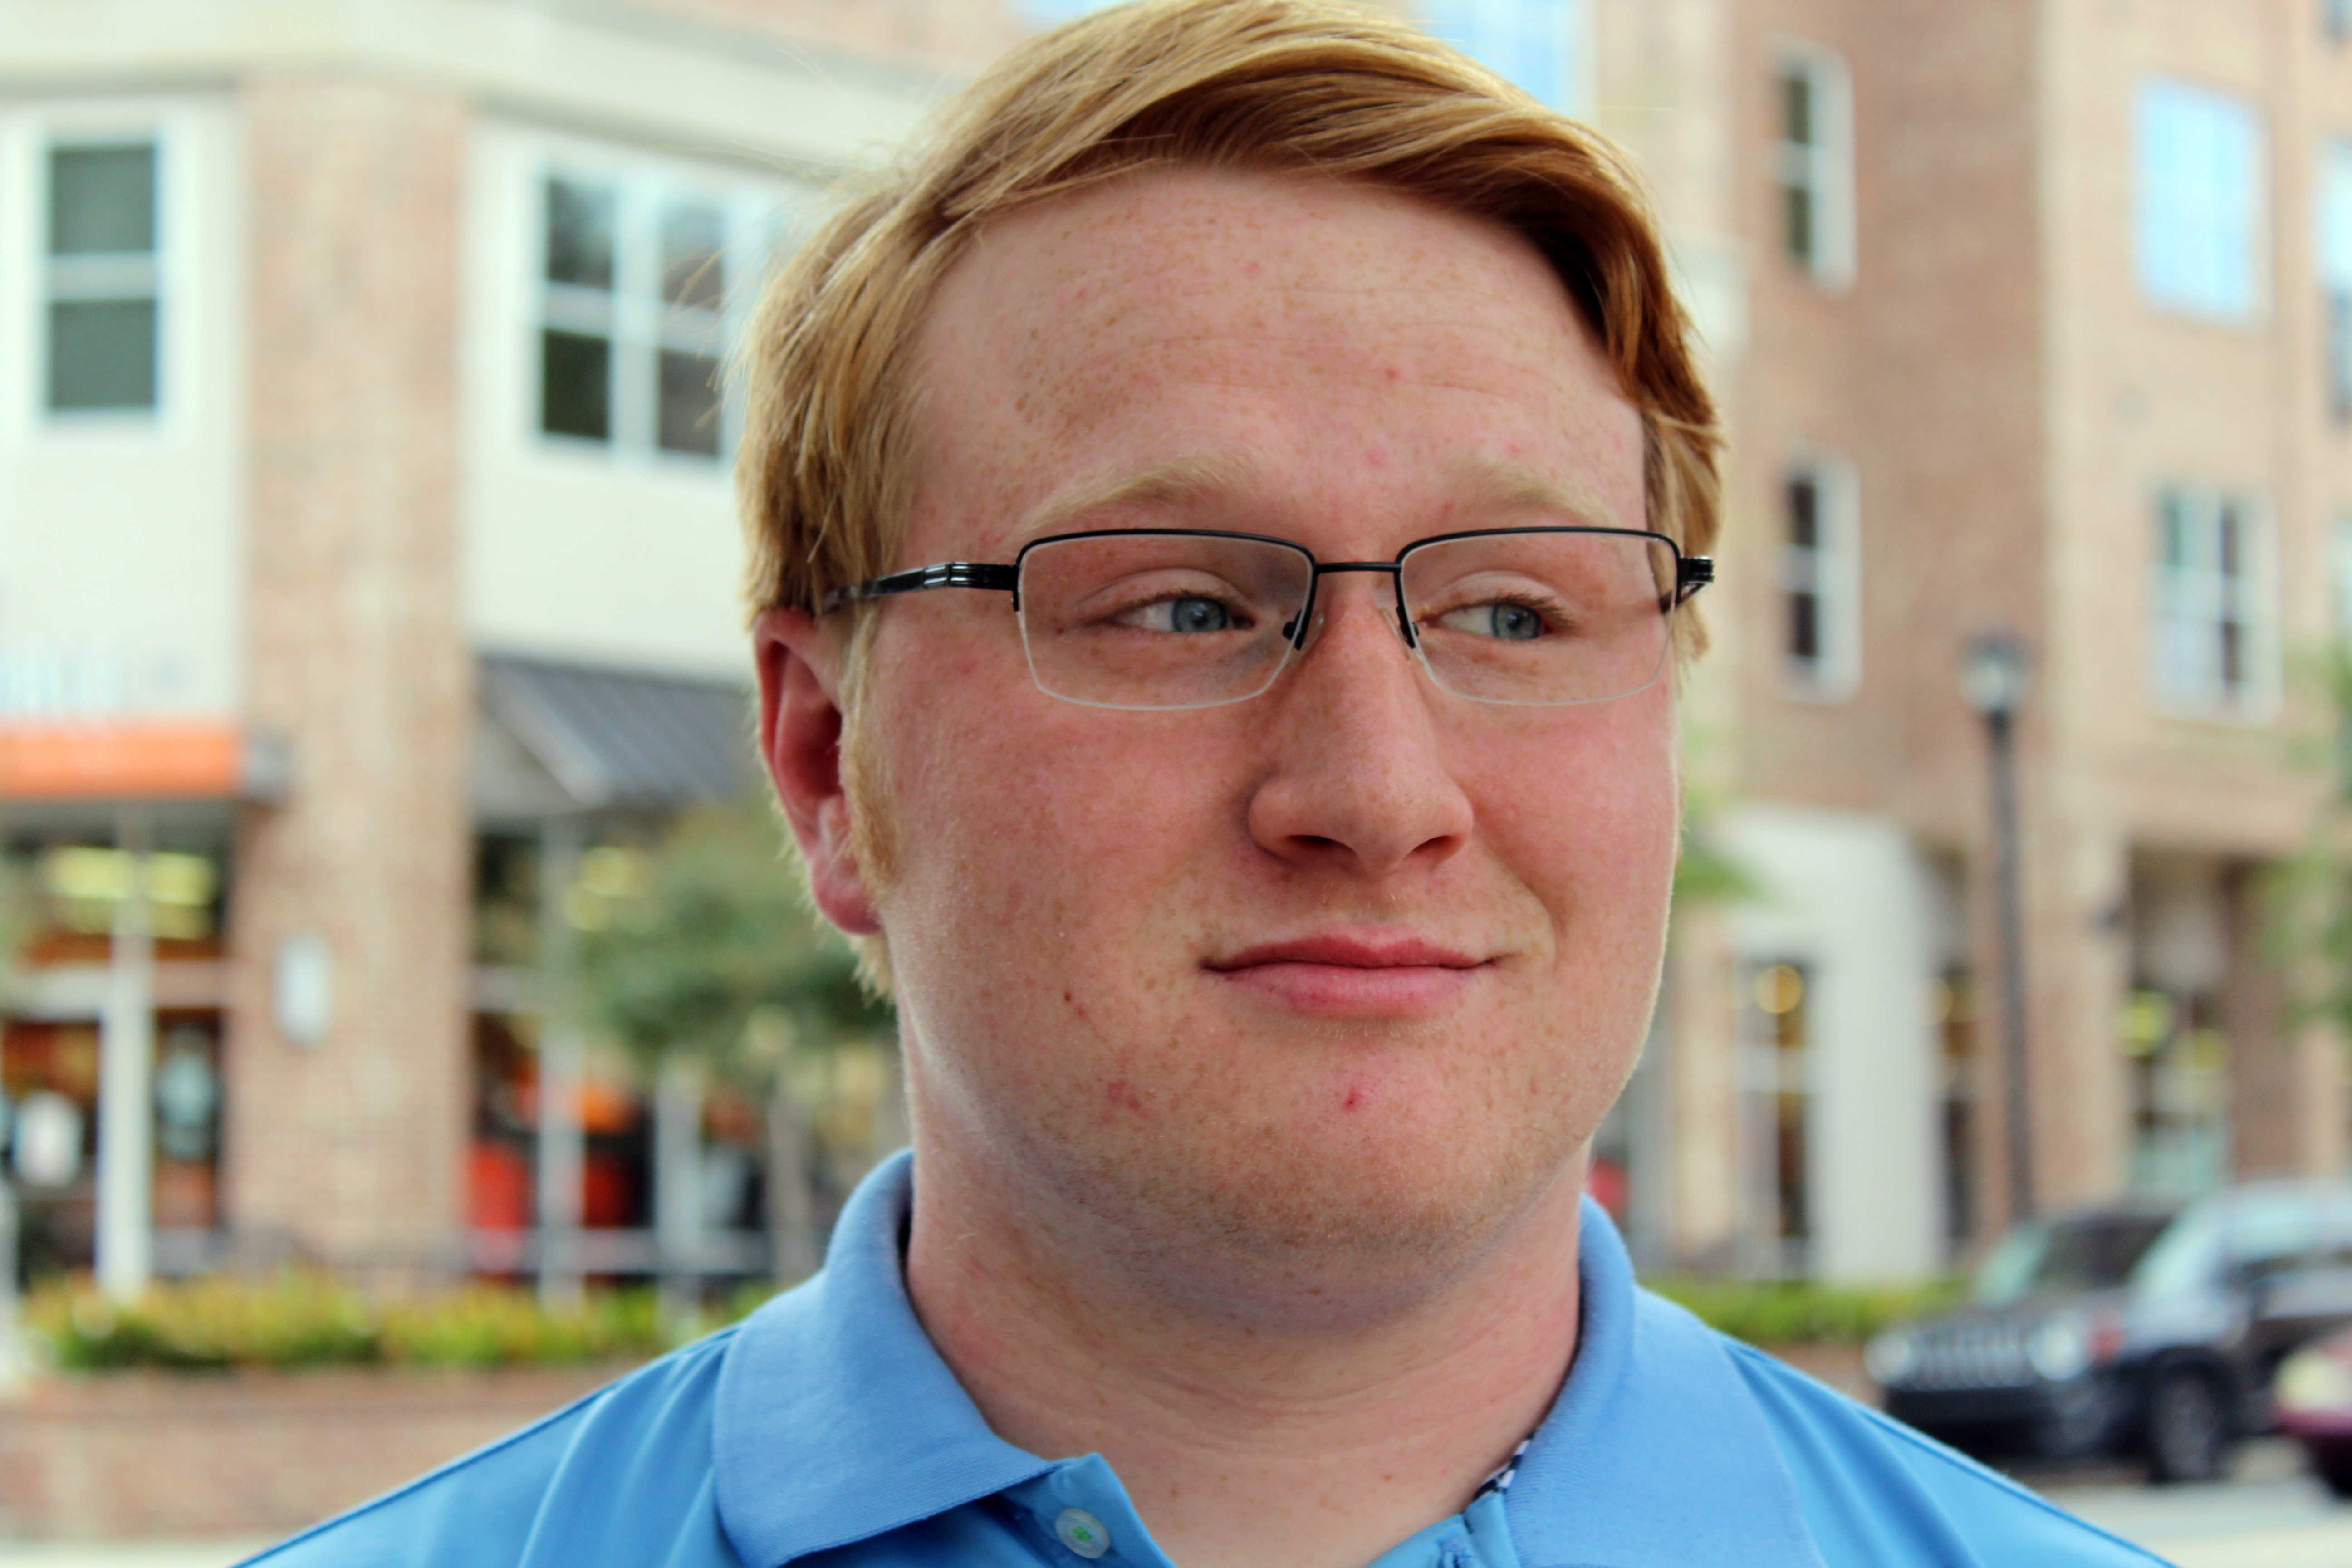 In Need Of A Political Reset: A Young Republican's View